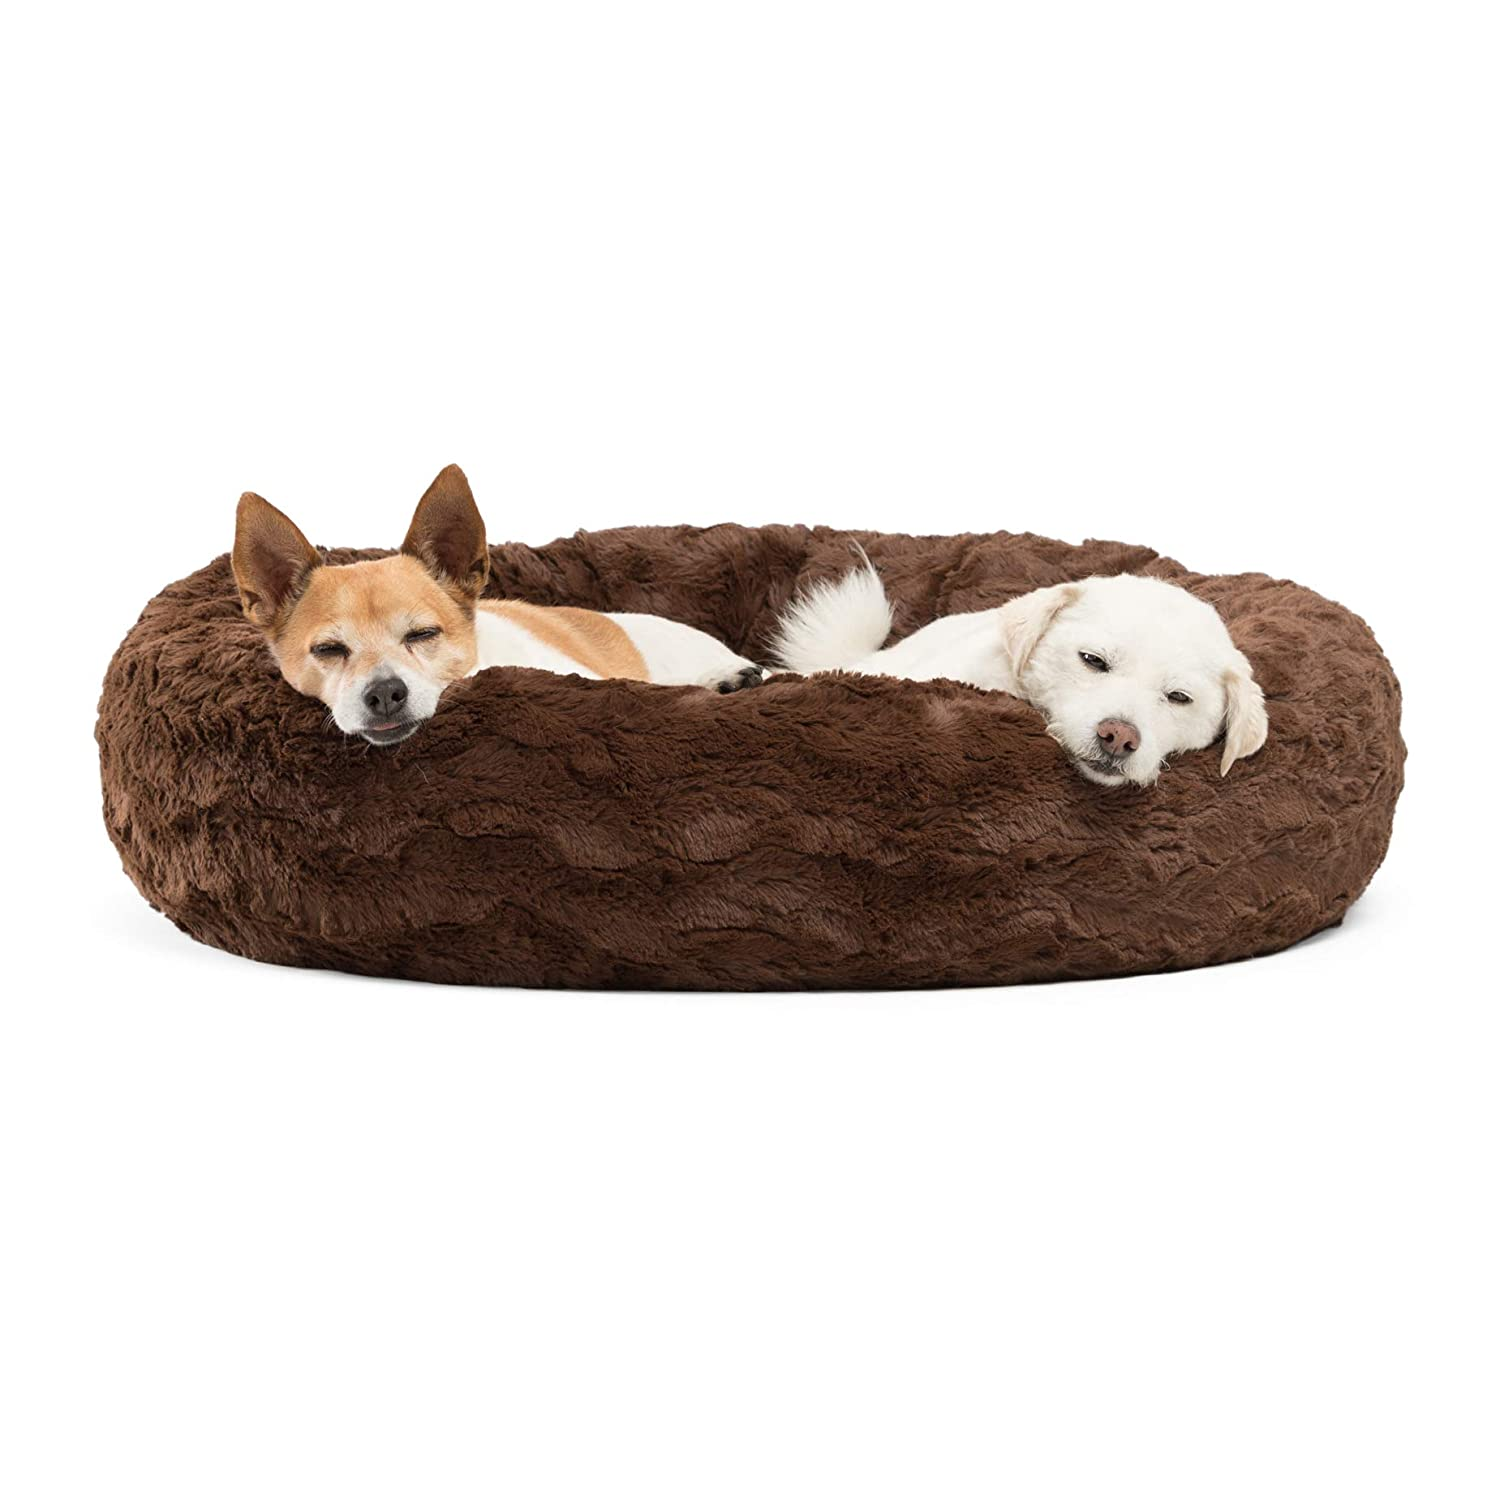 Best Friends by Sheri Luxury Faux Fur Donut Cuddler (30x30 ), Dark Chocolate Small Round Donut Cat and Dog Cushion Bed, Orthopedic Relief